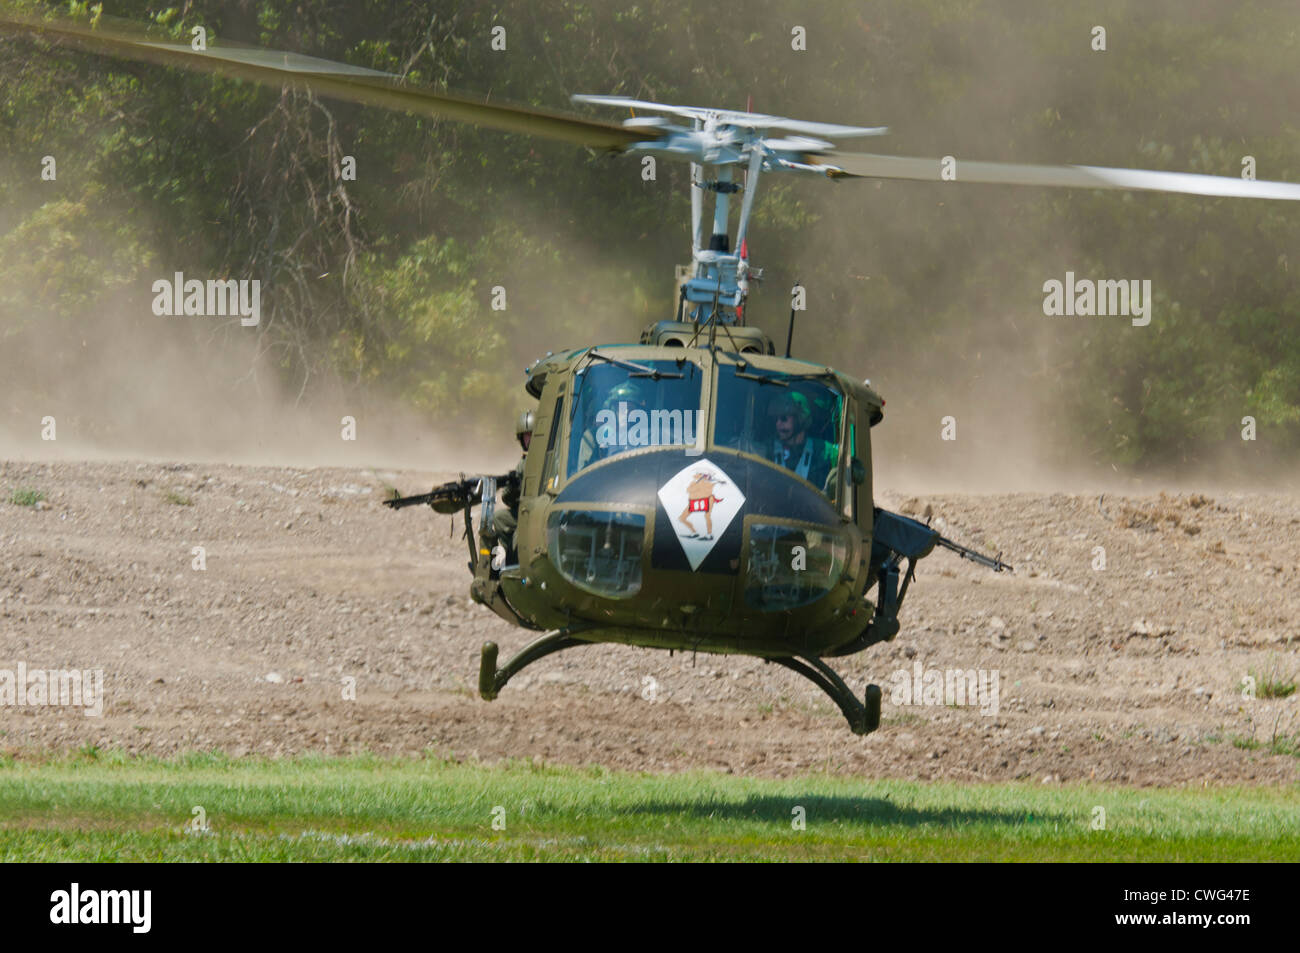 A restored Vietnam-era US Huey helicopter, equipped with an M60 MG, making a fast takeoff after dropping an infantry - Stock Image